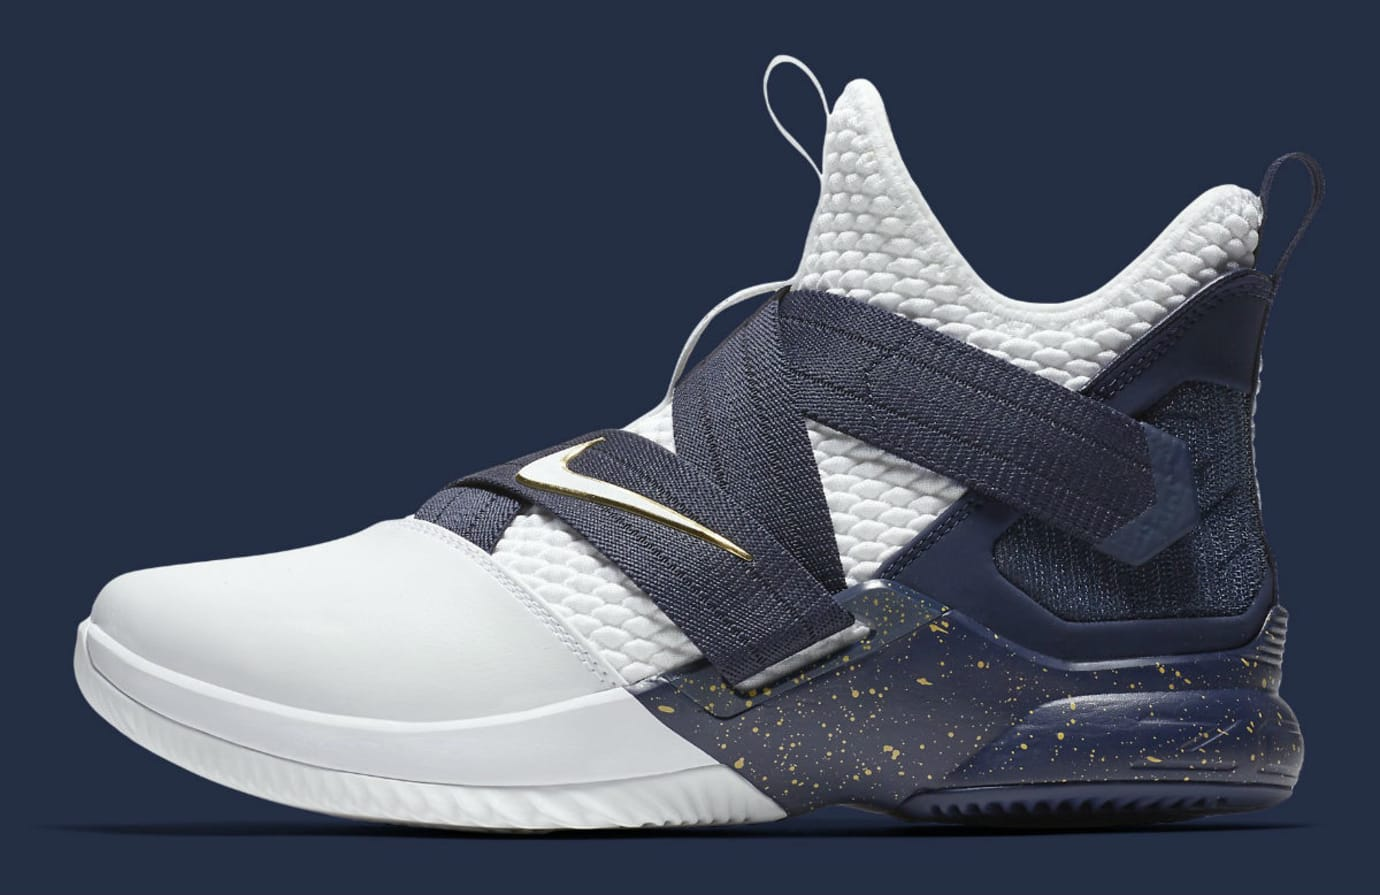 wholesale dealer b6b00 fb789 Nike LeBron Soldier 12 XII Witness Navy Release Date AO4055-100 Profile